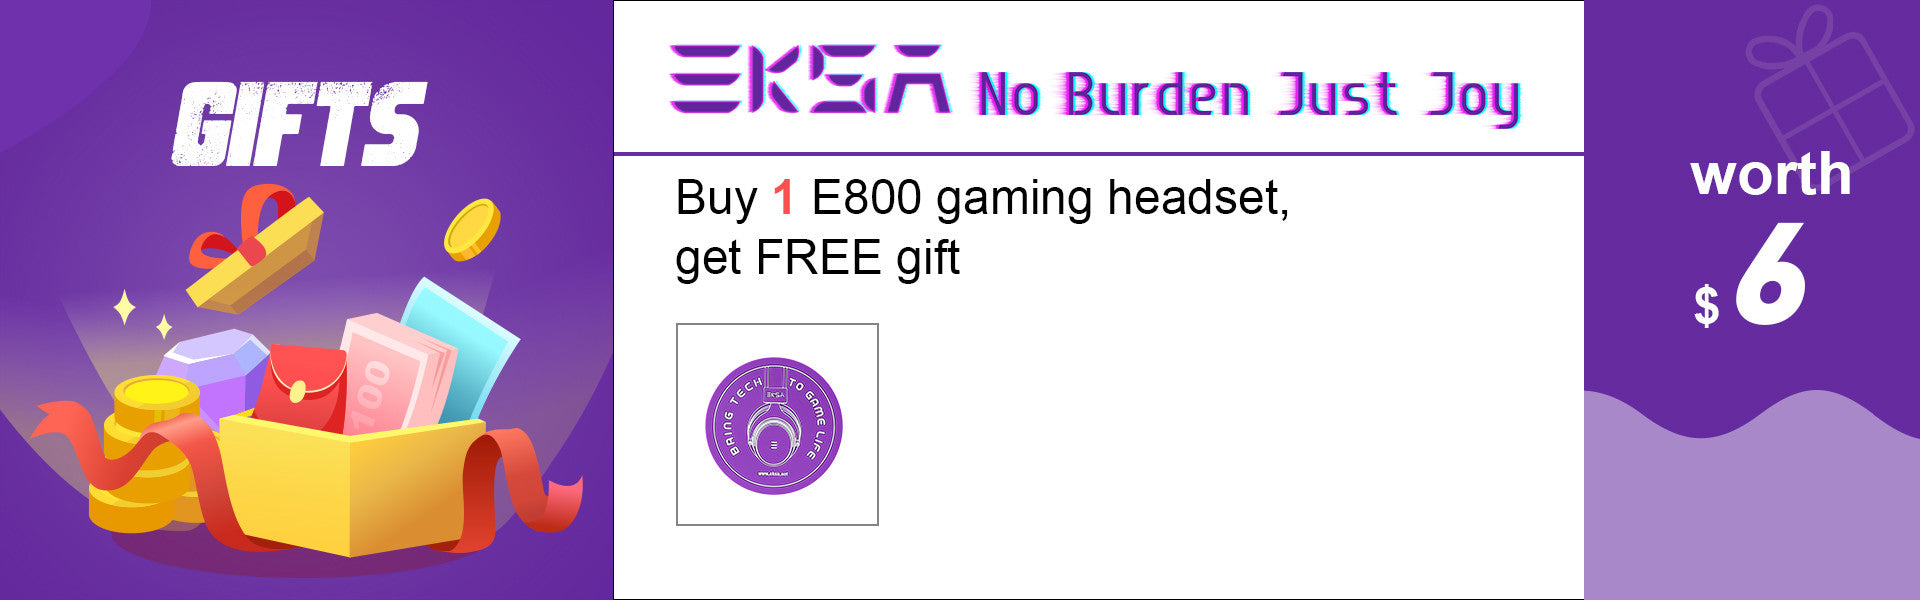 EKSA Free Gifts for Gamers